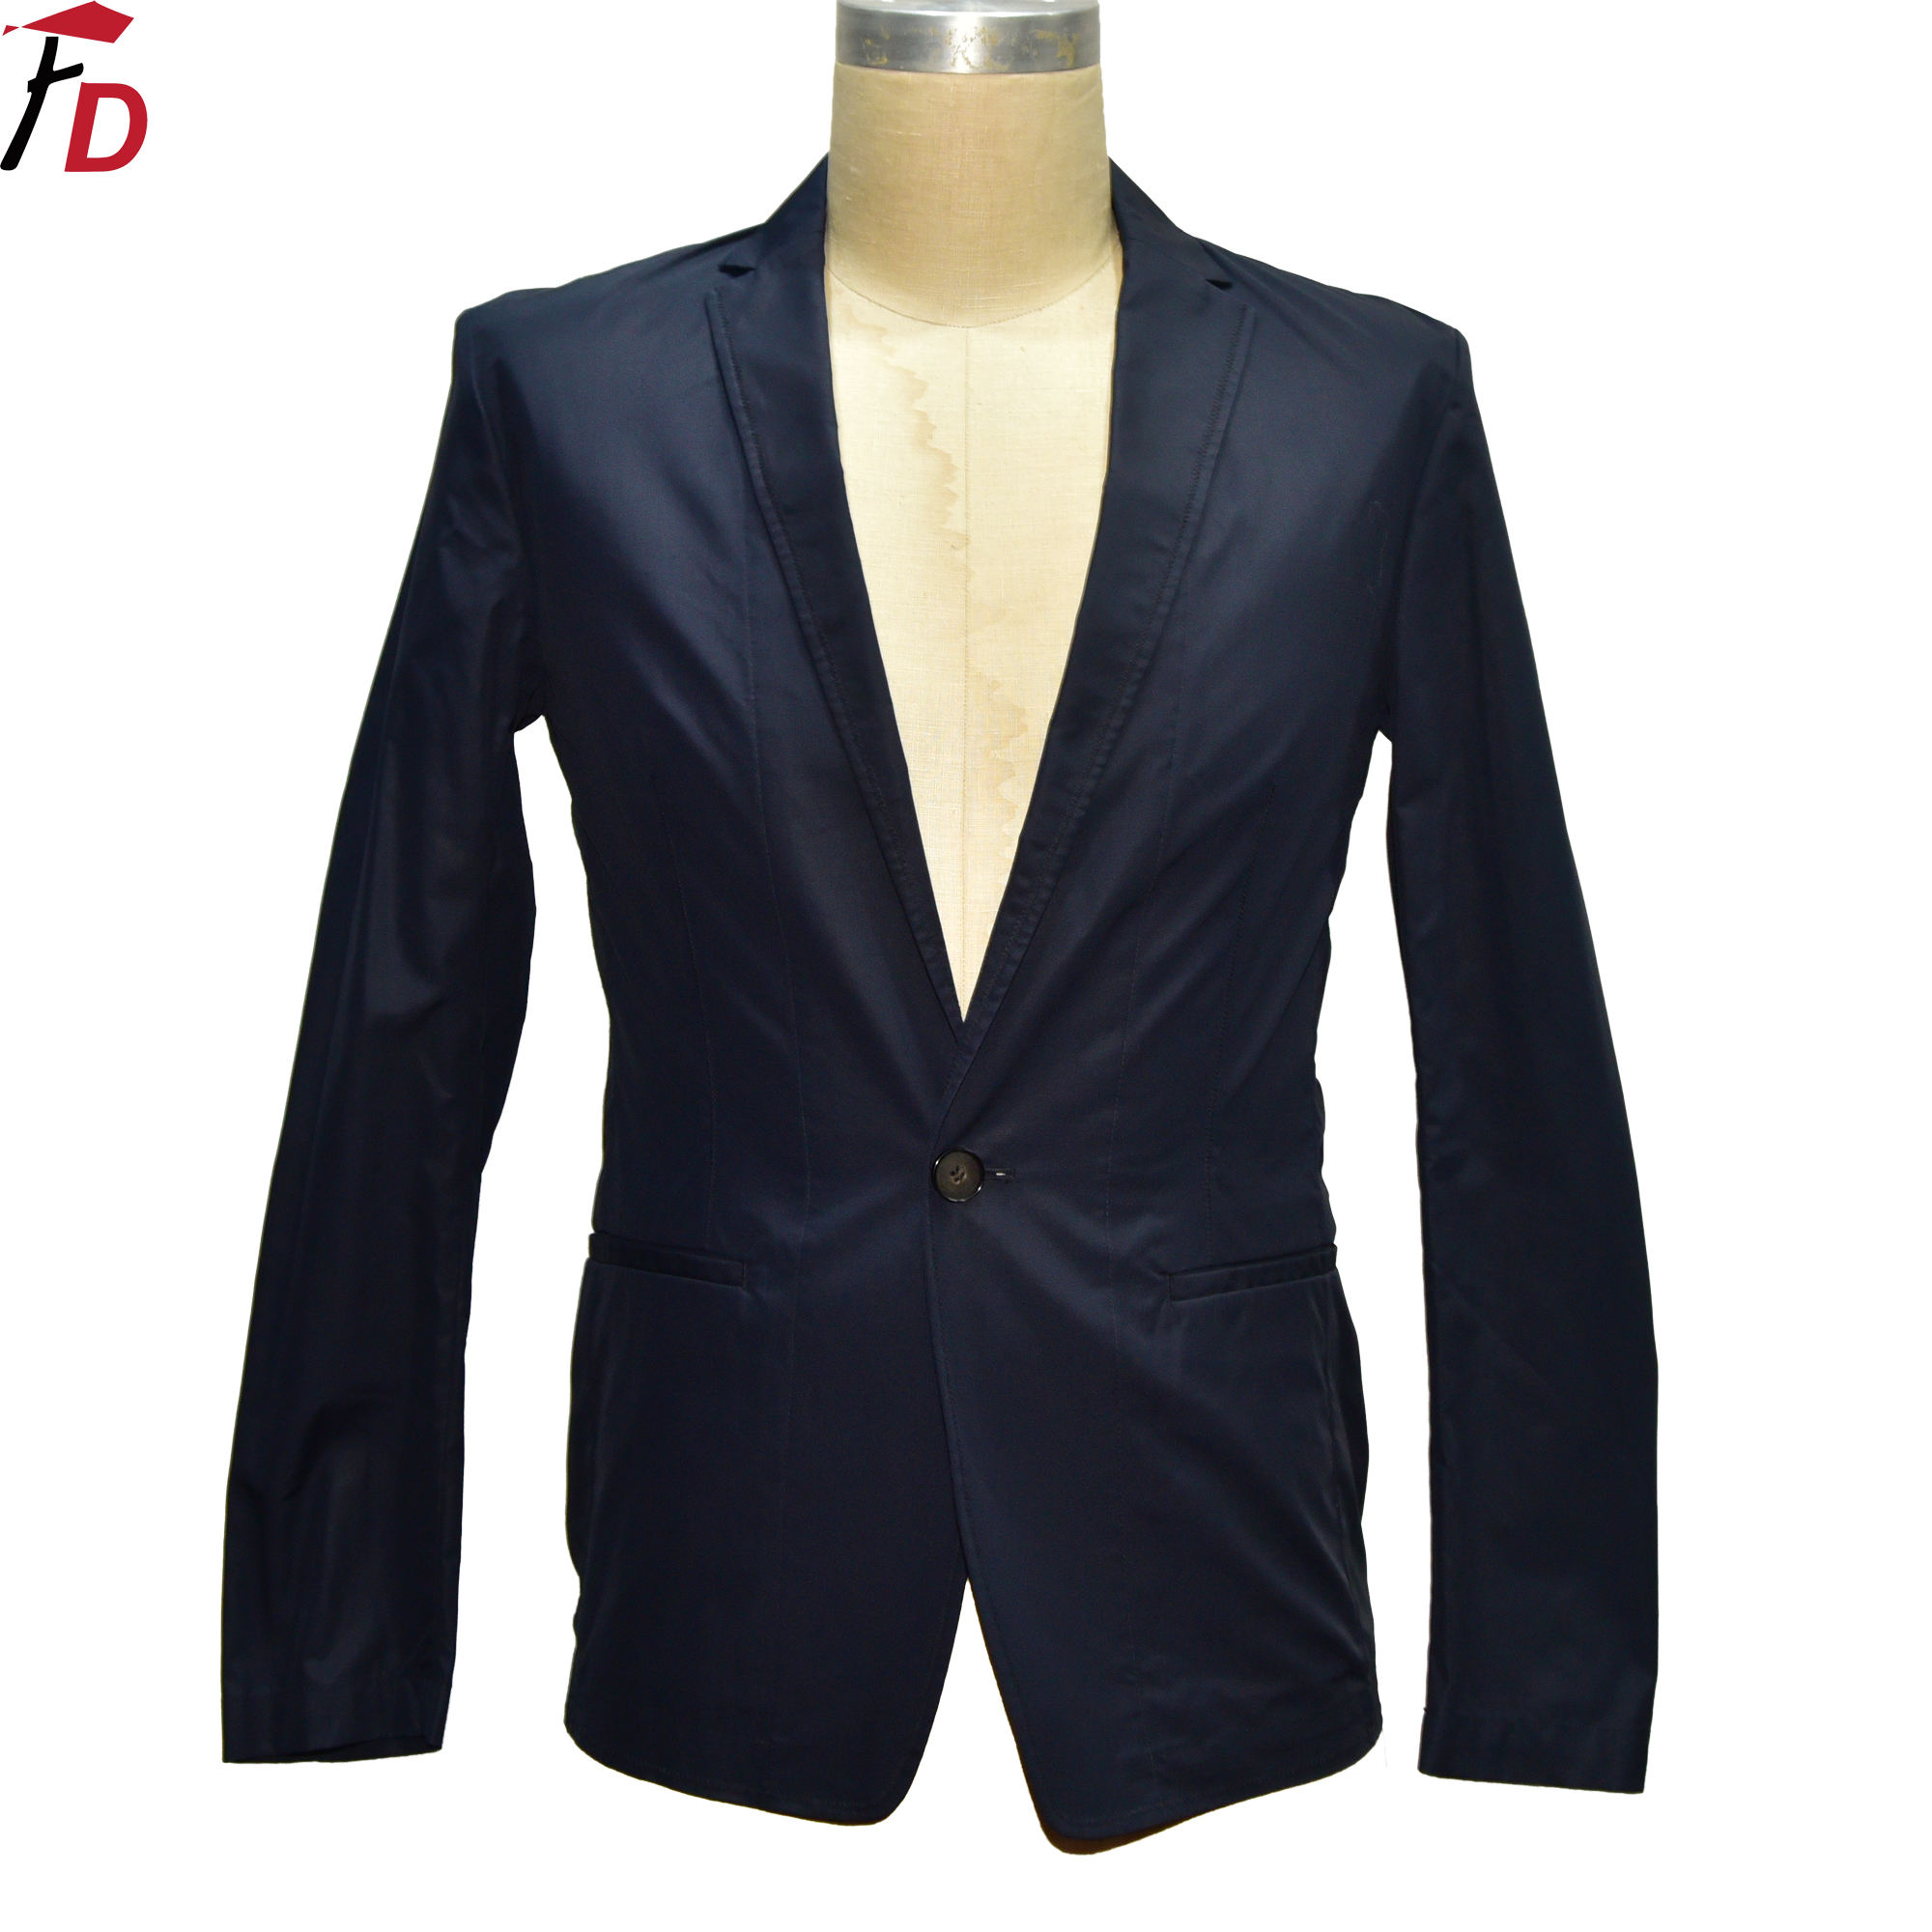 Cotton [ Suit ] Fit Mens Suit 2020 High Quality Custom Size New Style Cotton Casual Business Slim Fit Mens Blazer Suit